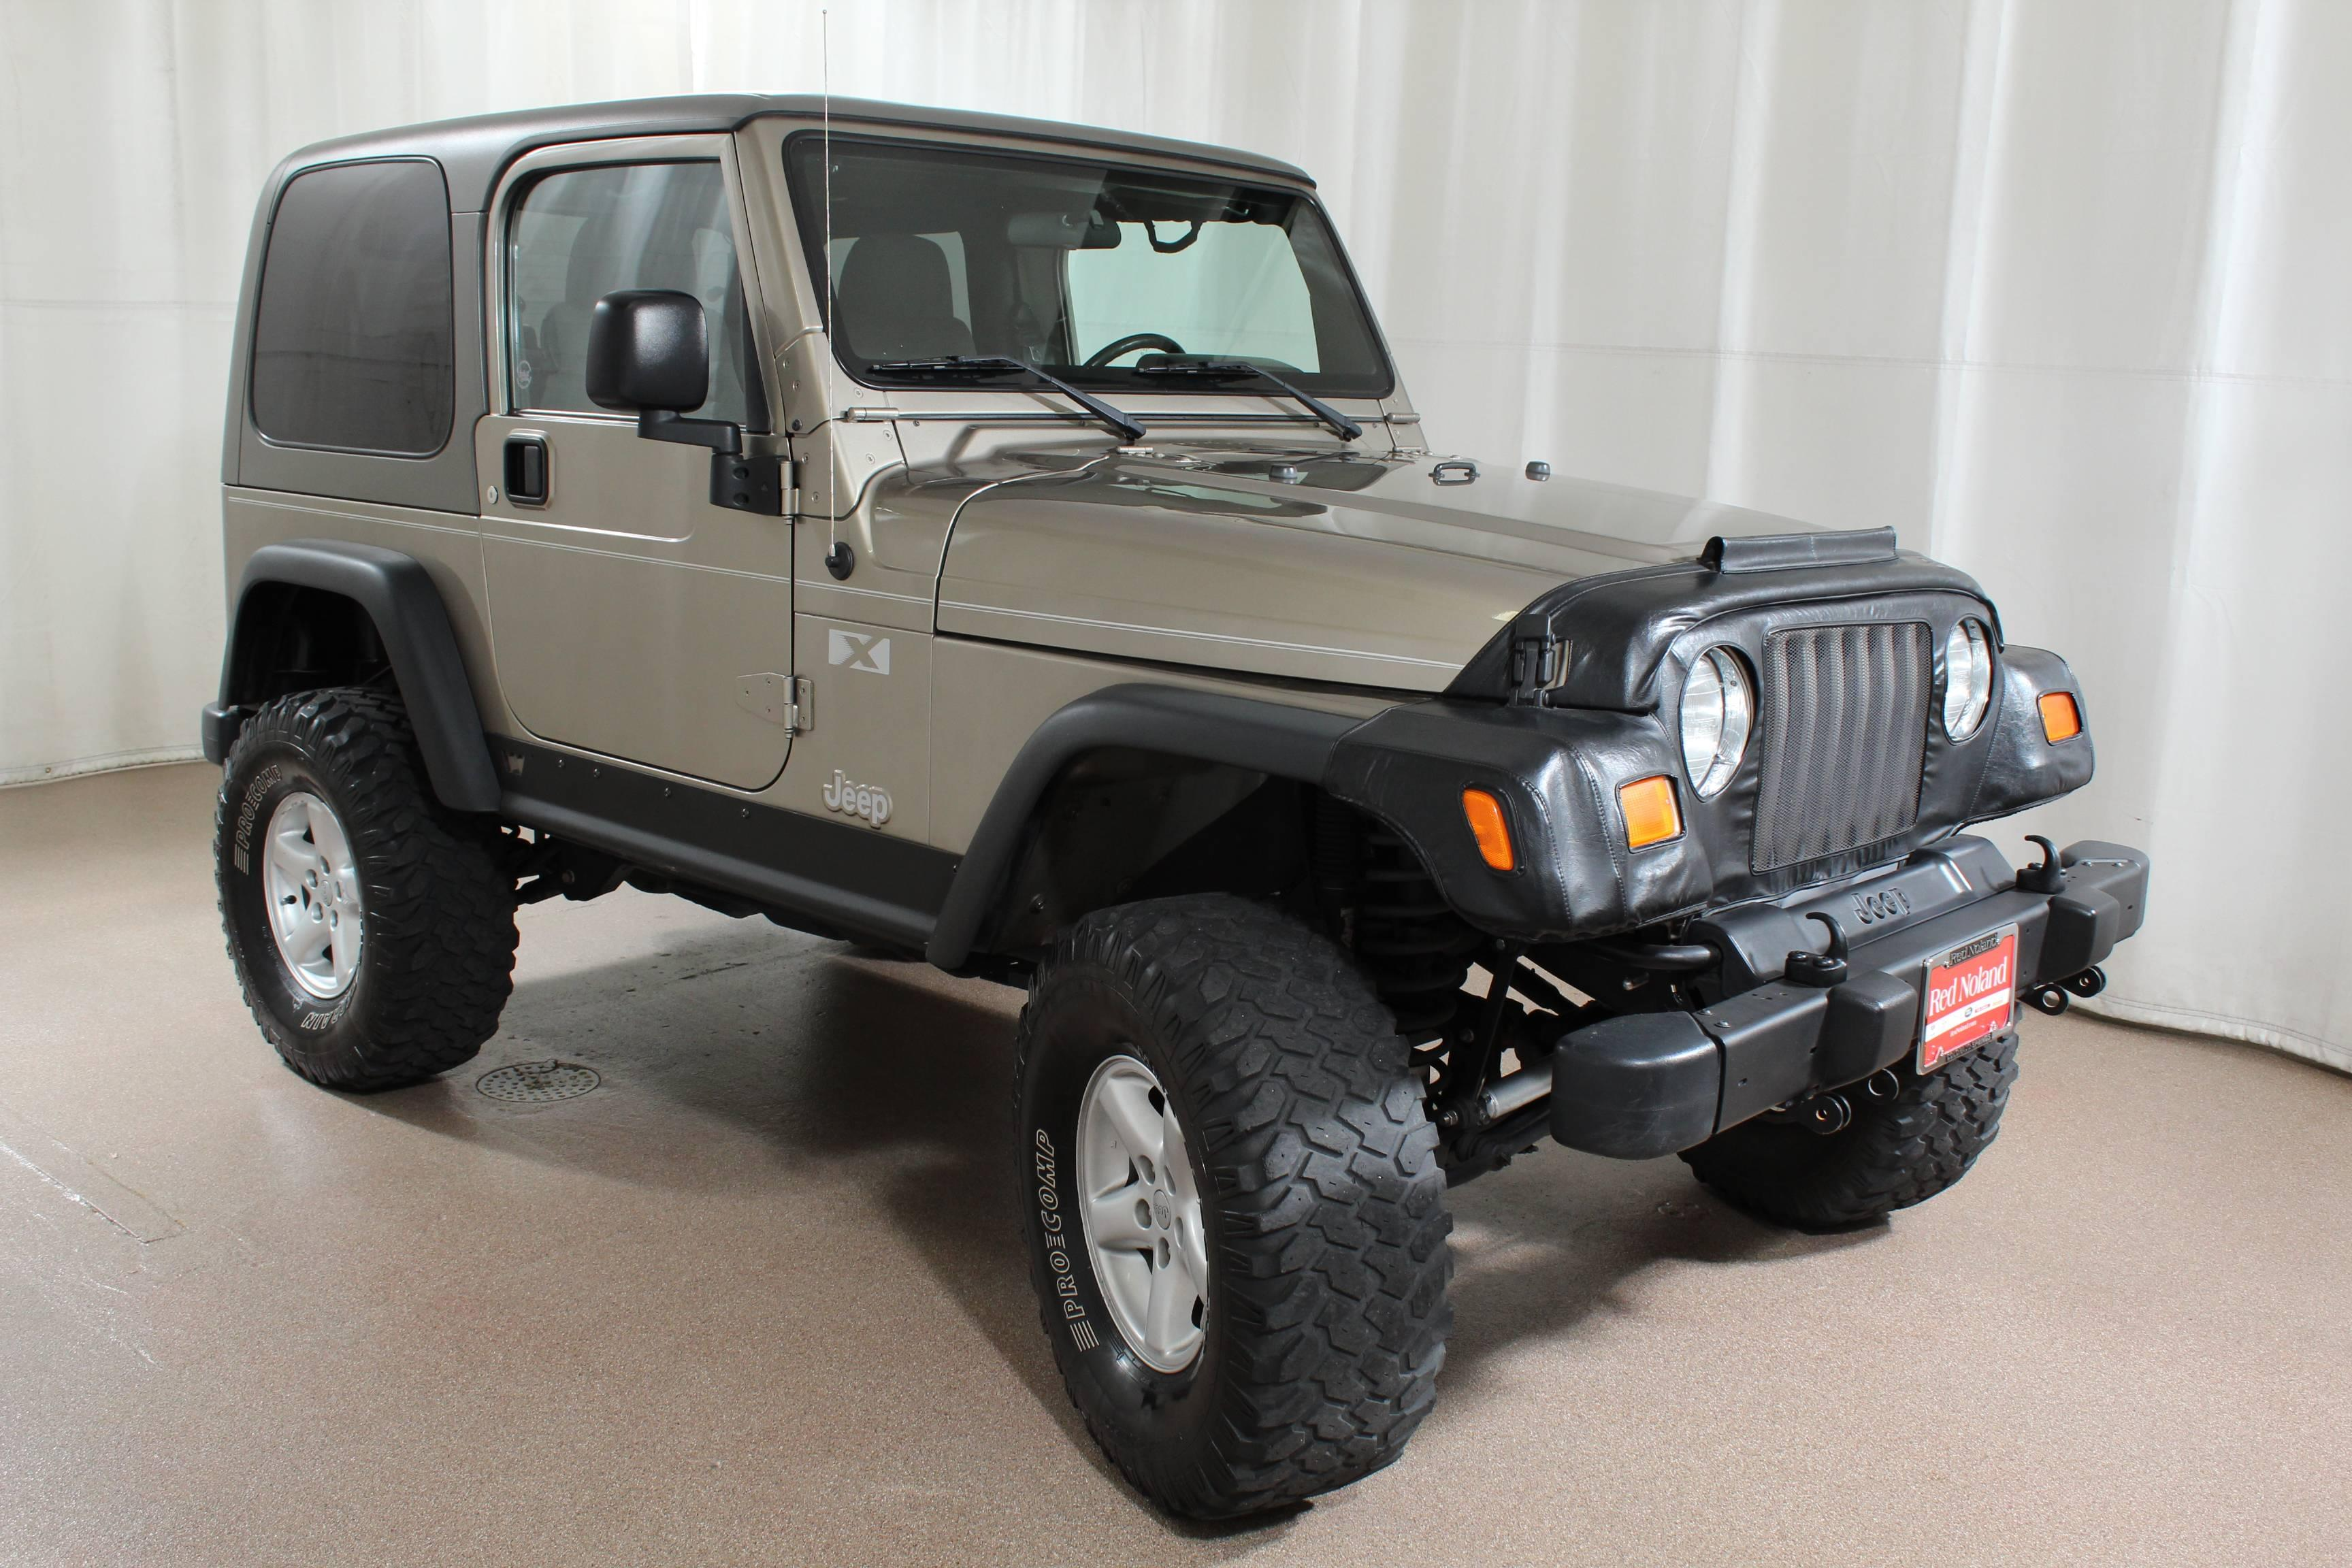 Used 2004 Jeep Wrangler For Sale Colorado Springs. U0027